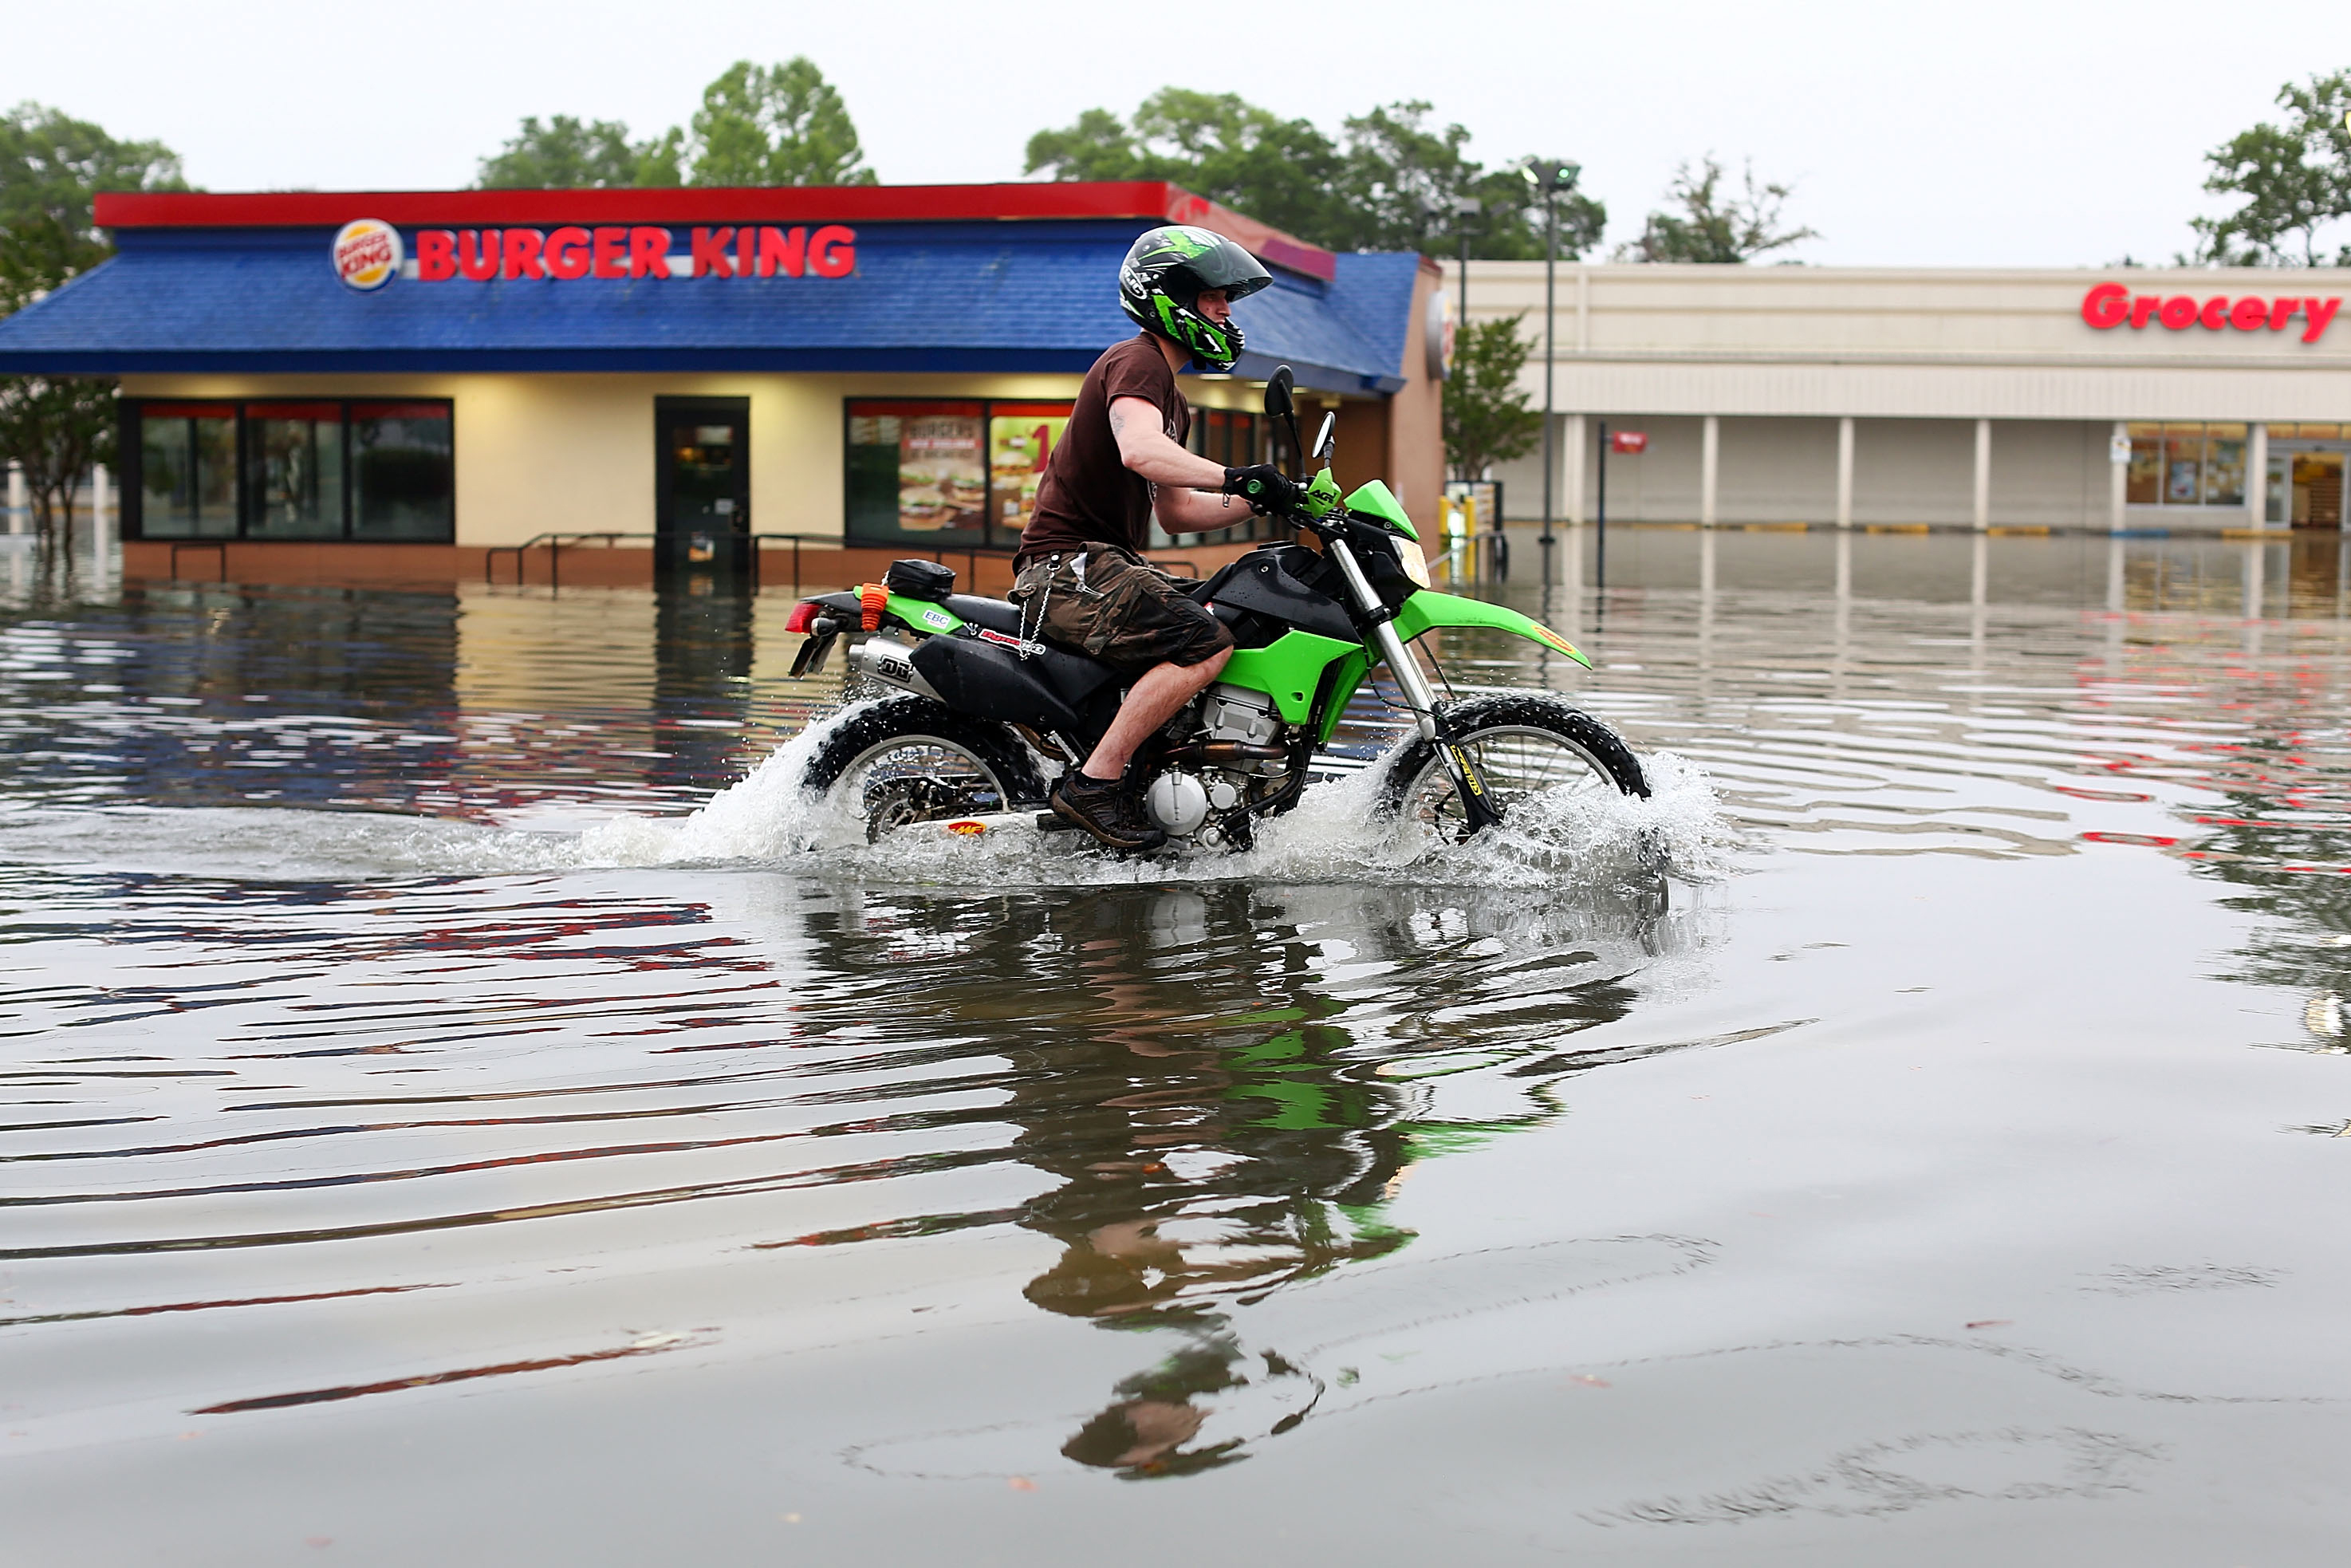 A man rode a motorcycle on a flooded street in Pensacola. Wednesday marked the single rainiest day ever recorded in the city.